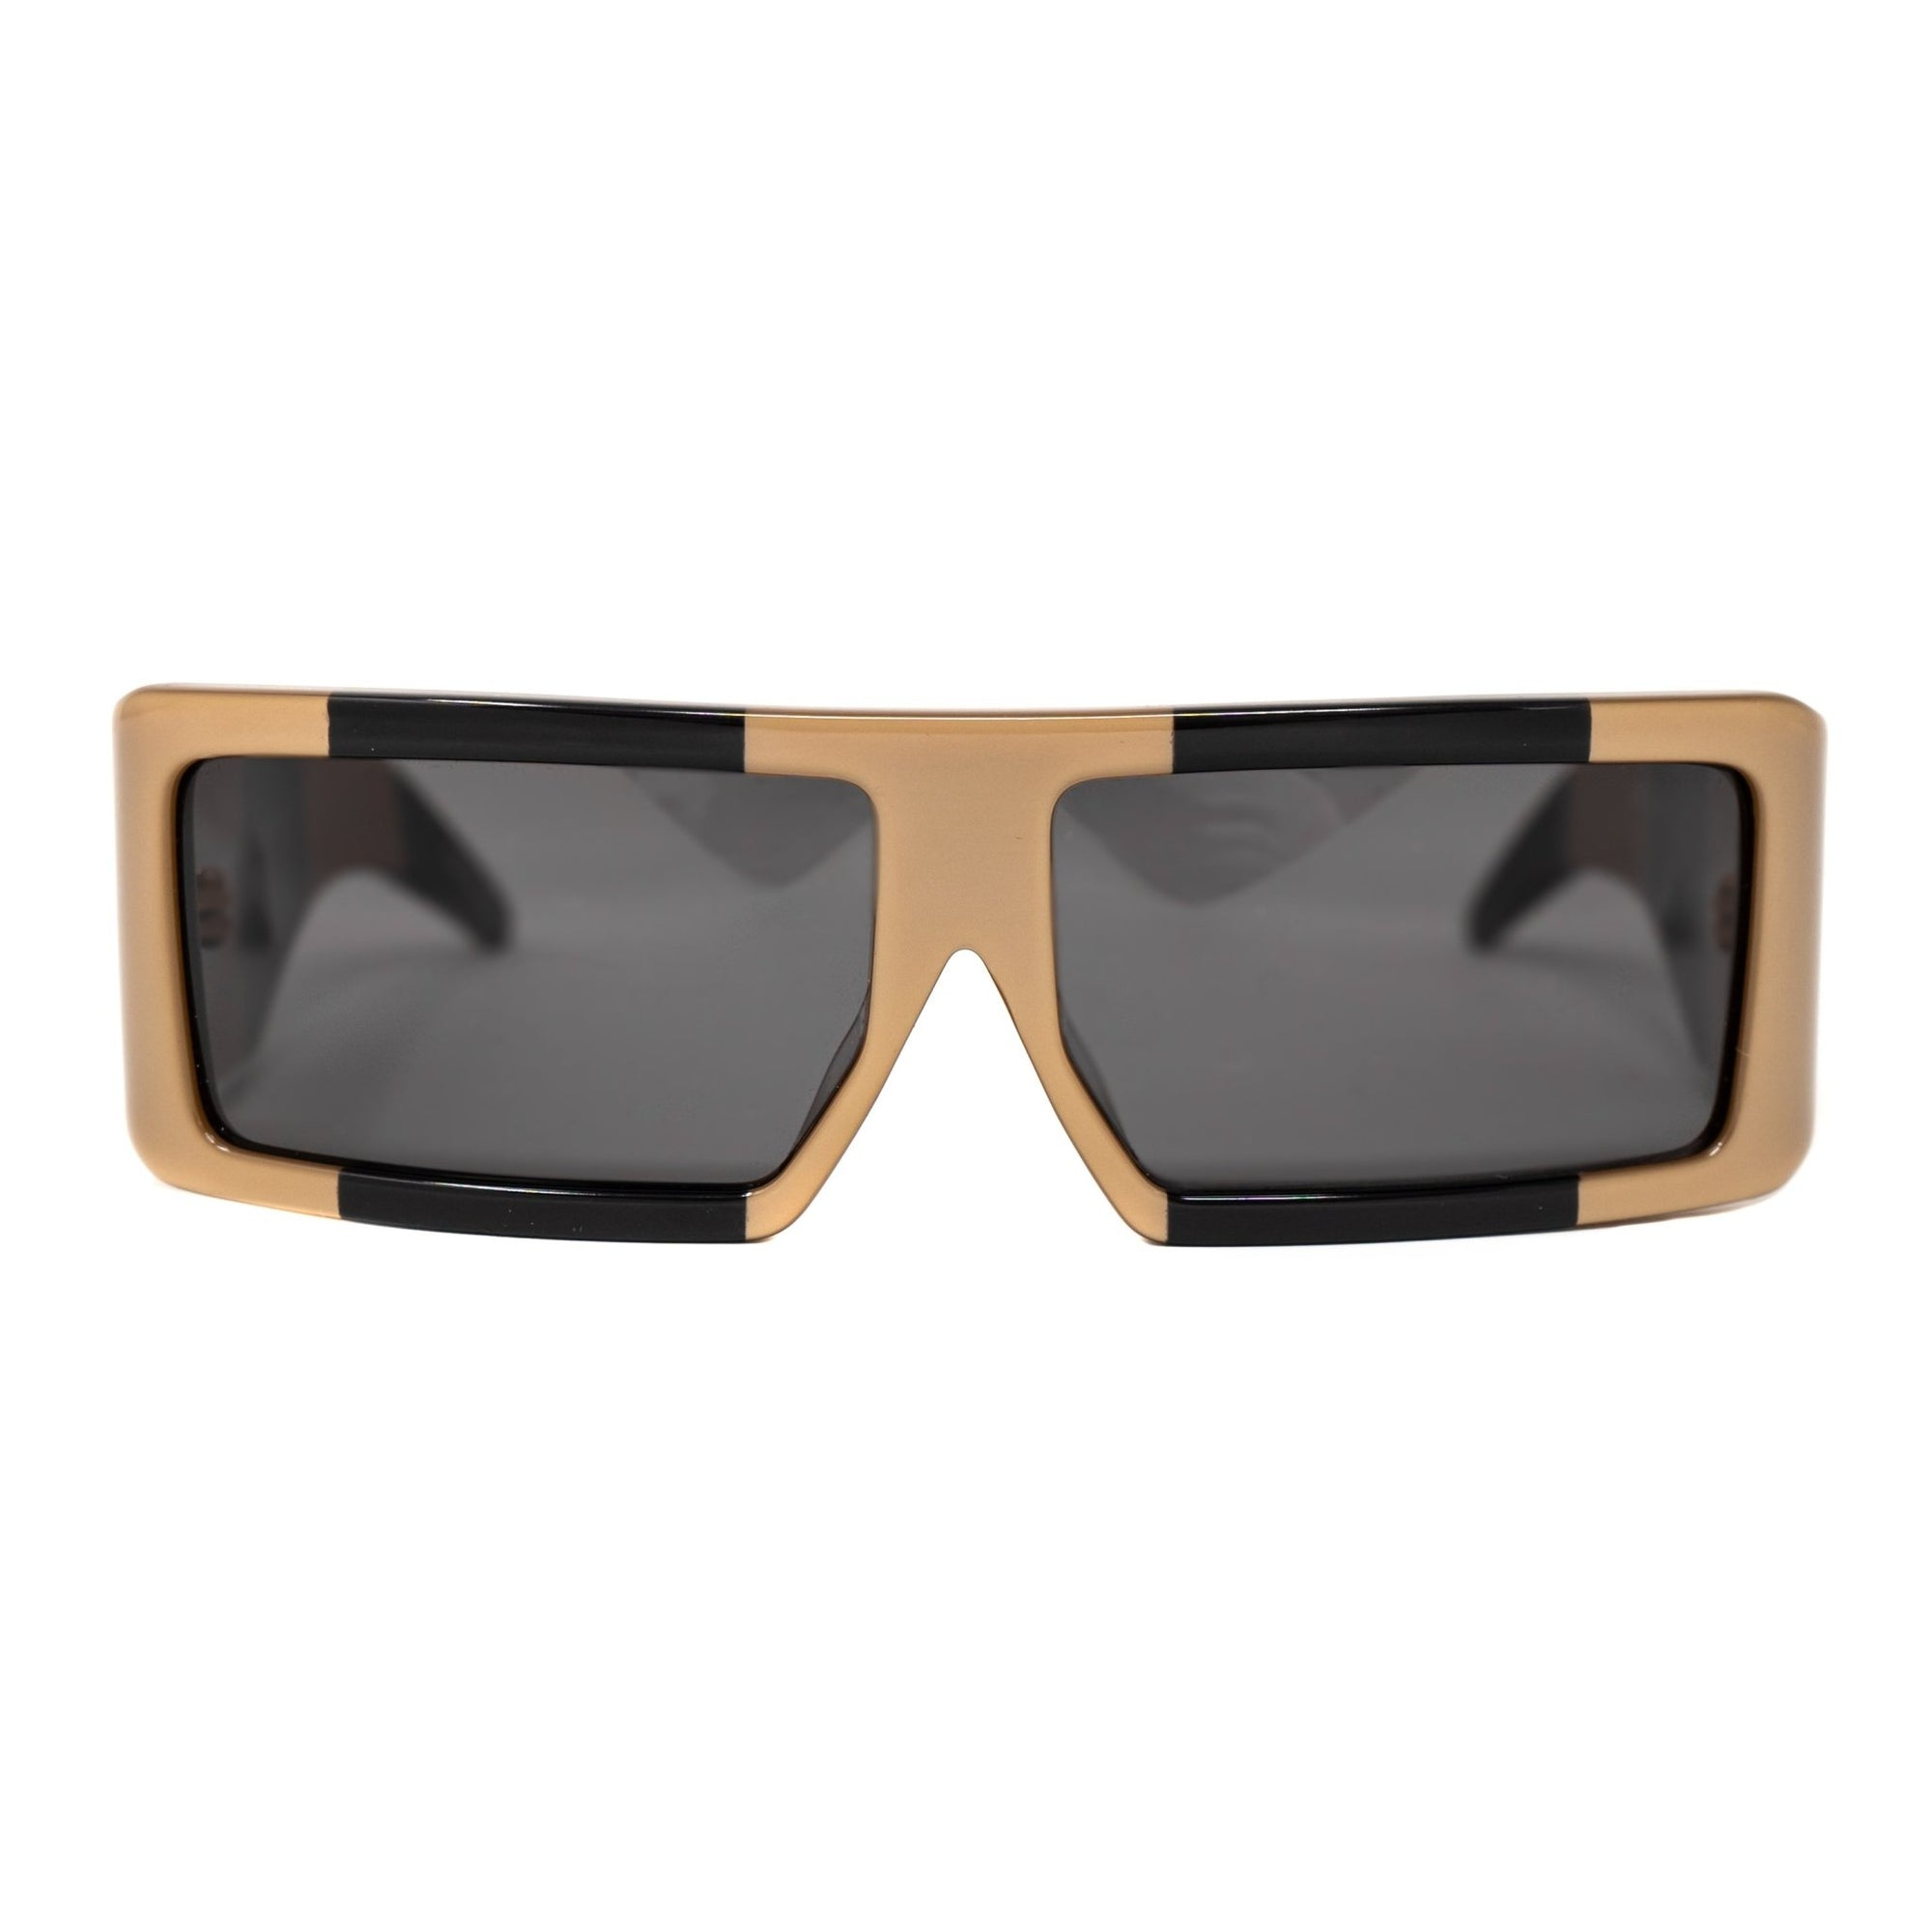 Jeremy Scott Sunglasses Rectangular Big Tut Brown & Black with Grey CAT3 Lenses 6JSBIGTUTGOLDBLACK - Watches & Crystals